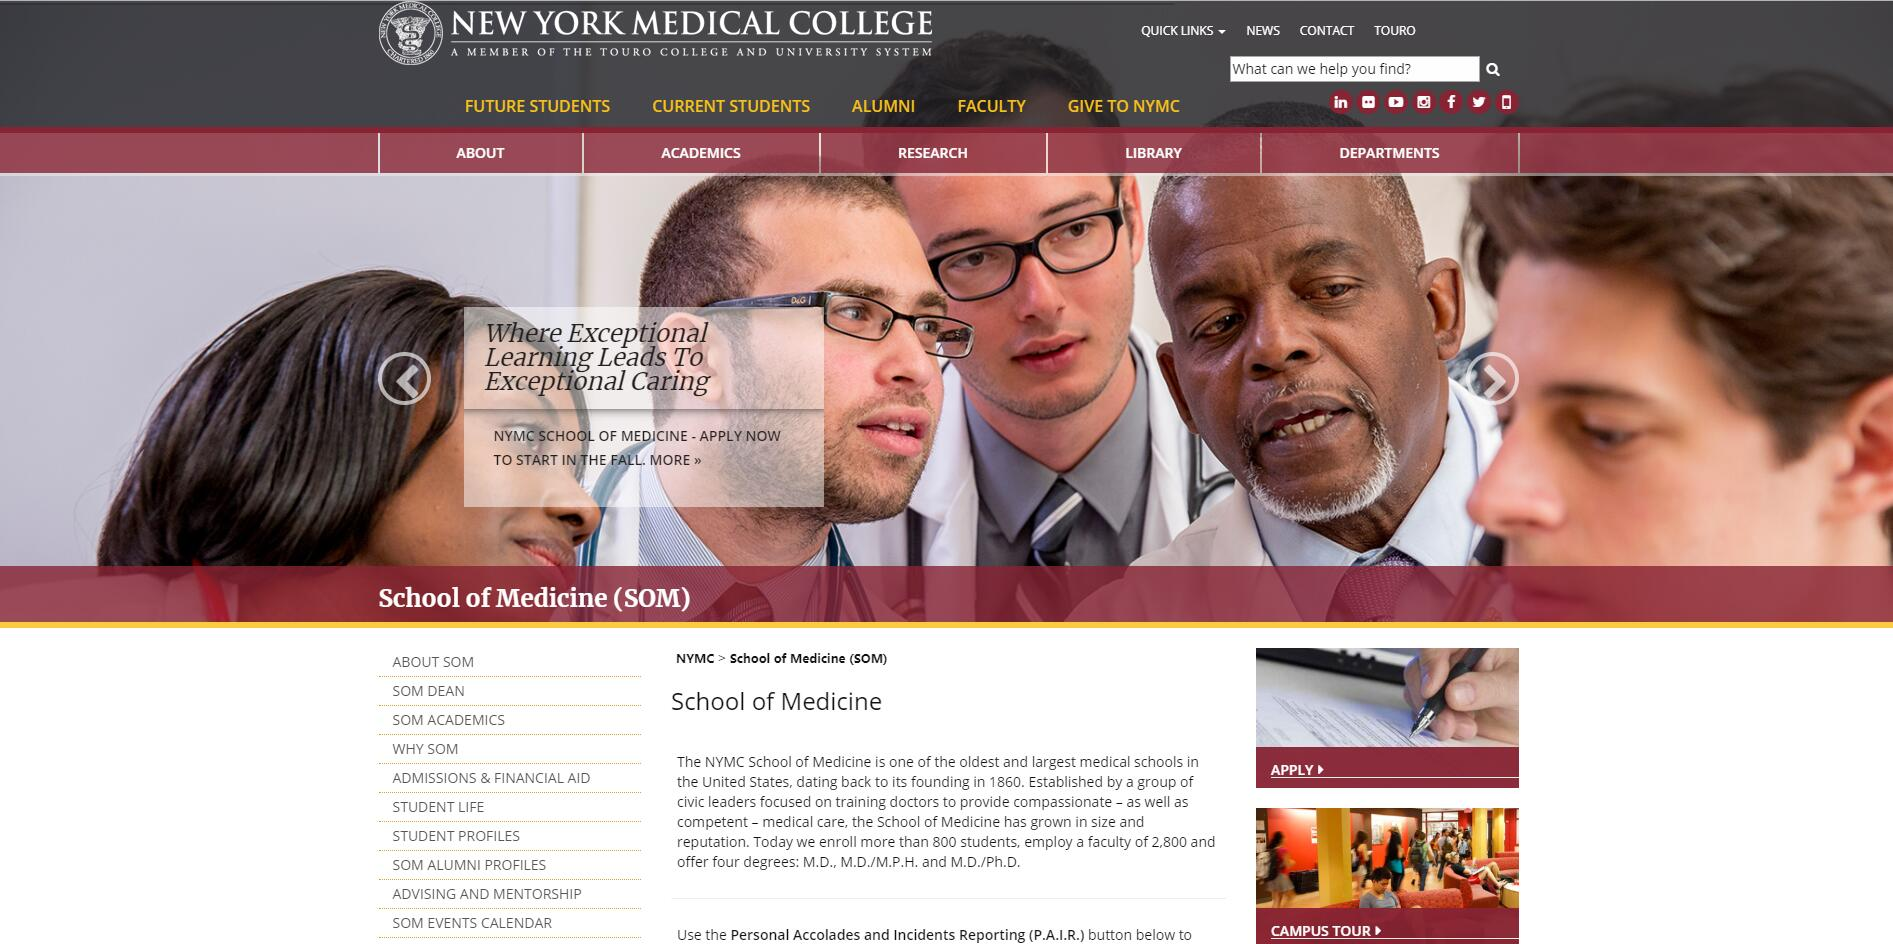 The School of Medicine at New York Medical College